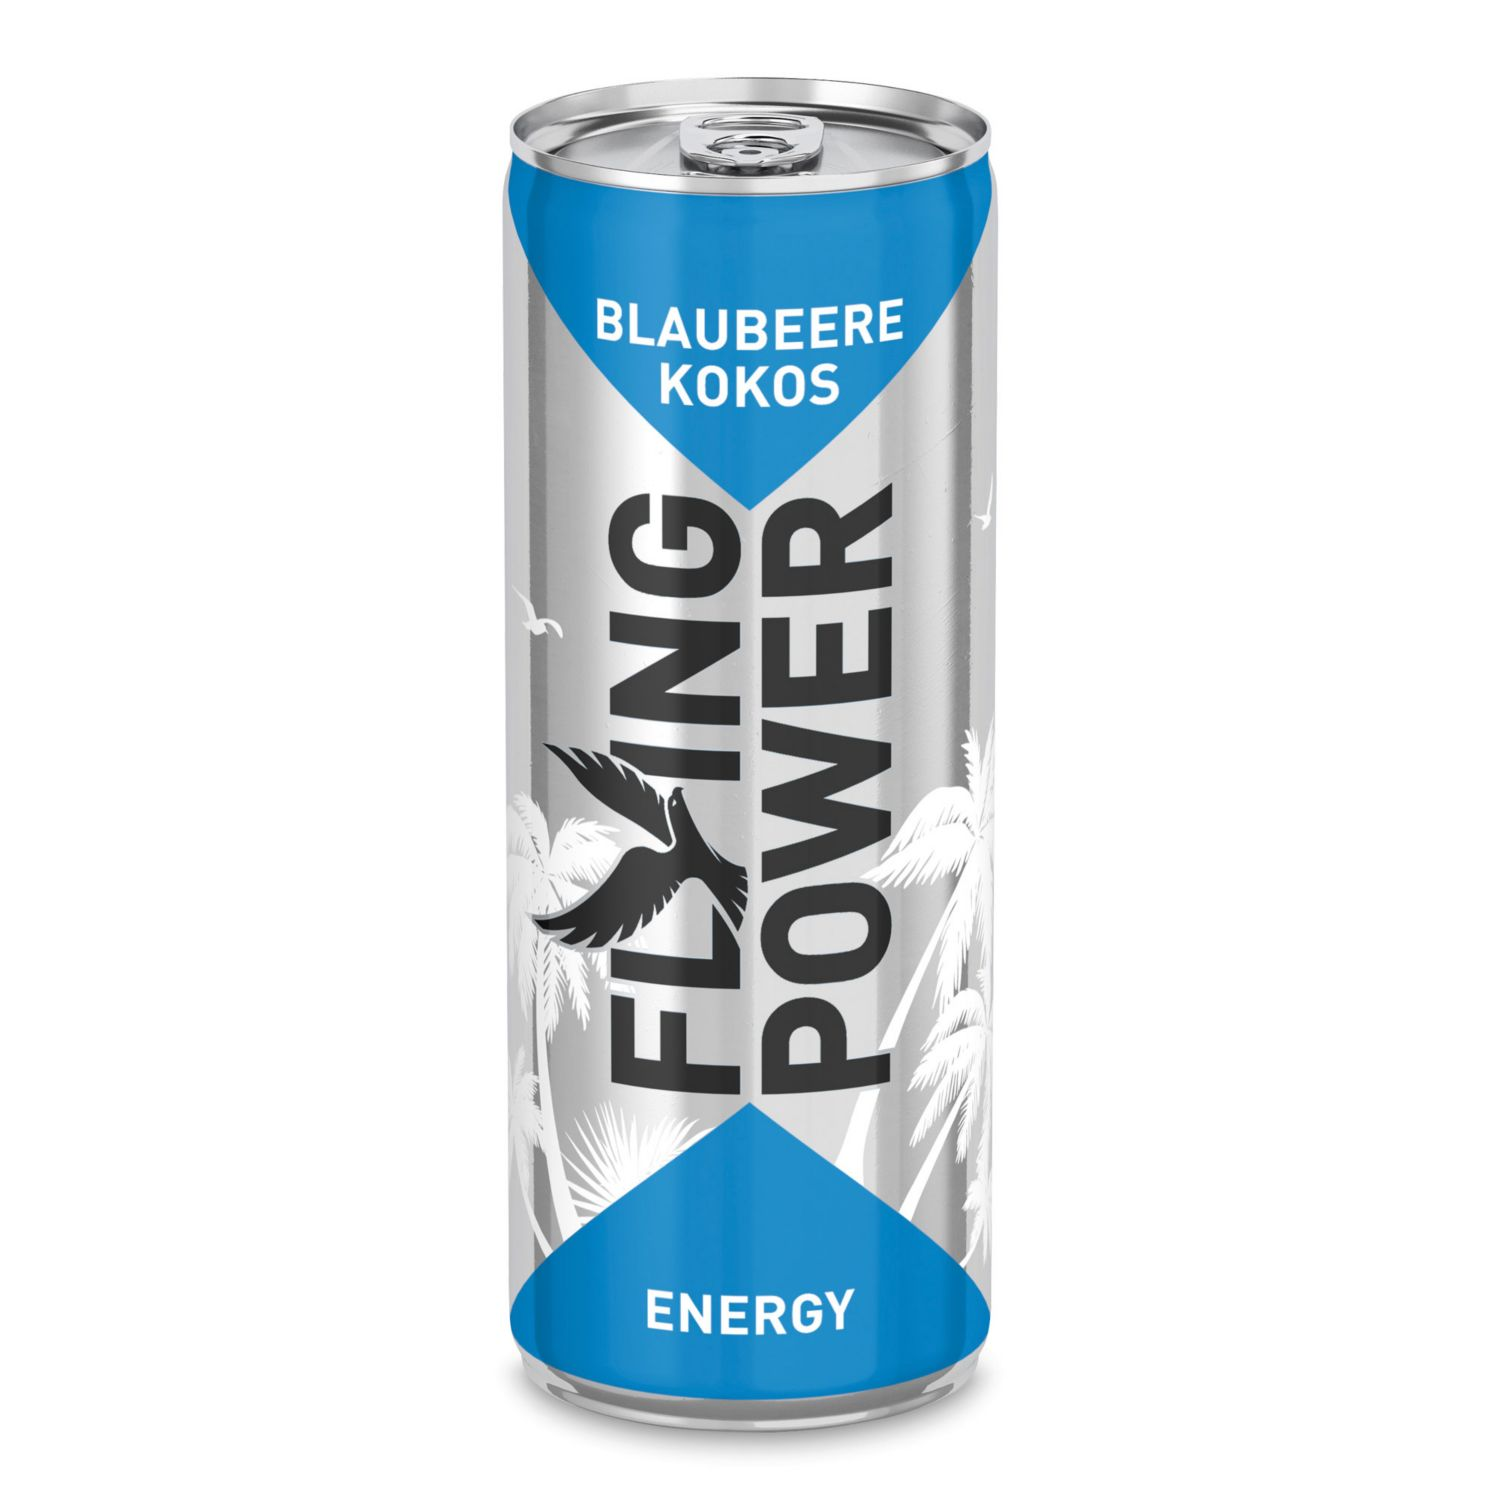 FLYING POWER Energy Drink, Kokos-Blaubeere